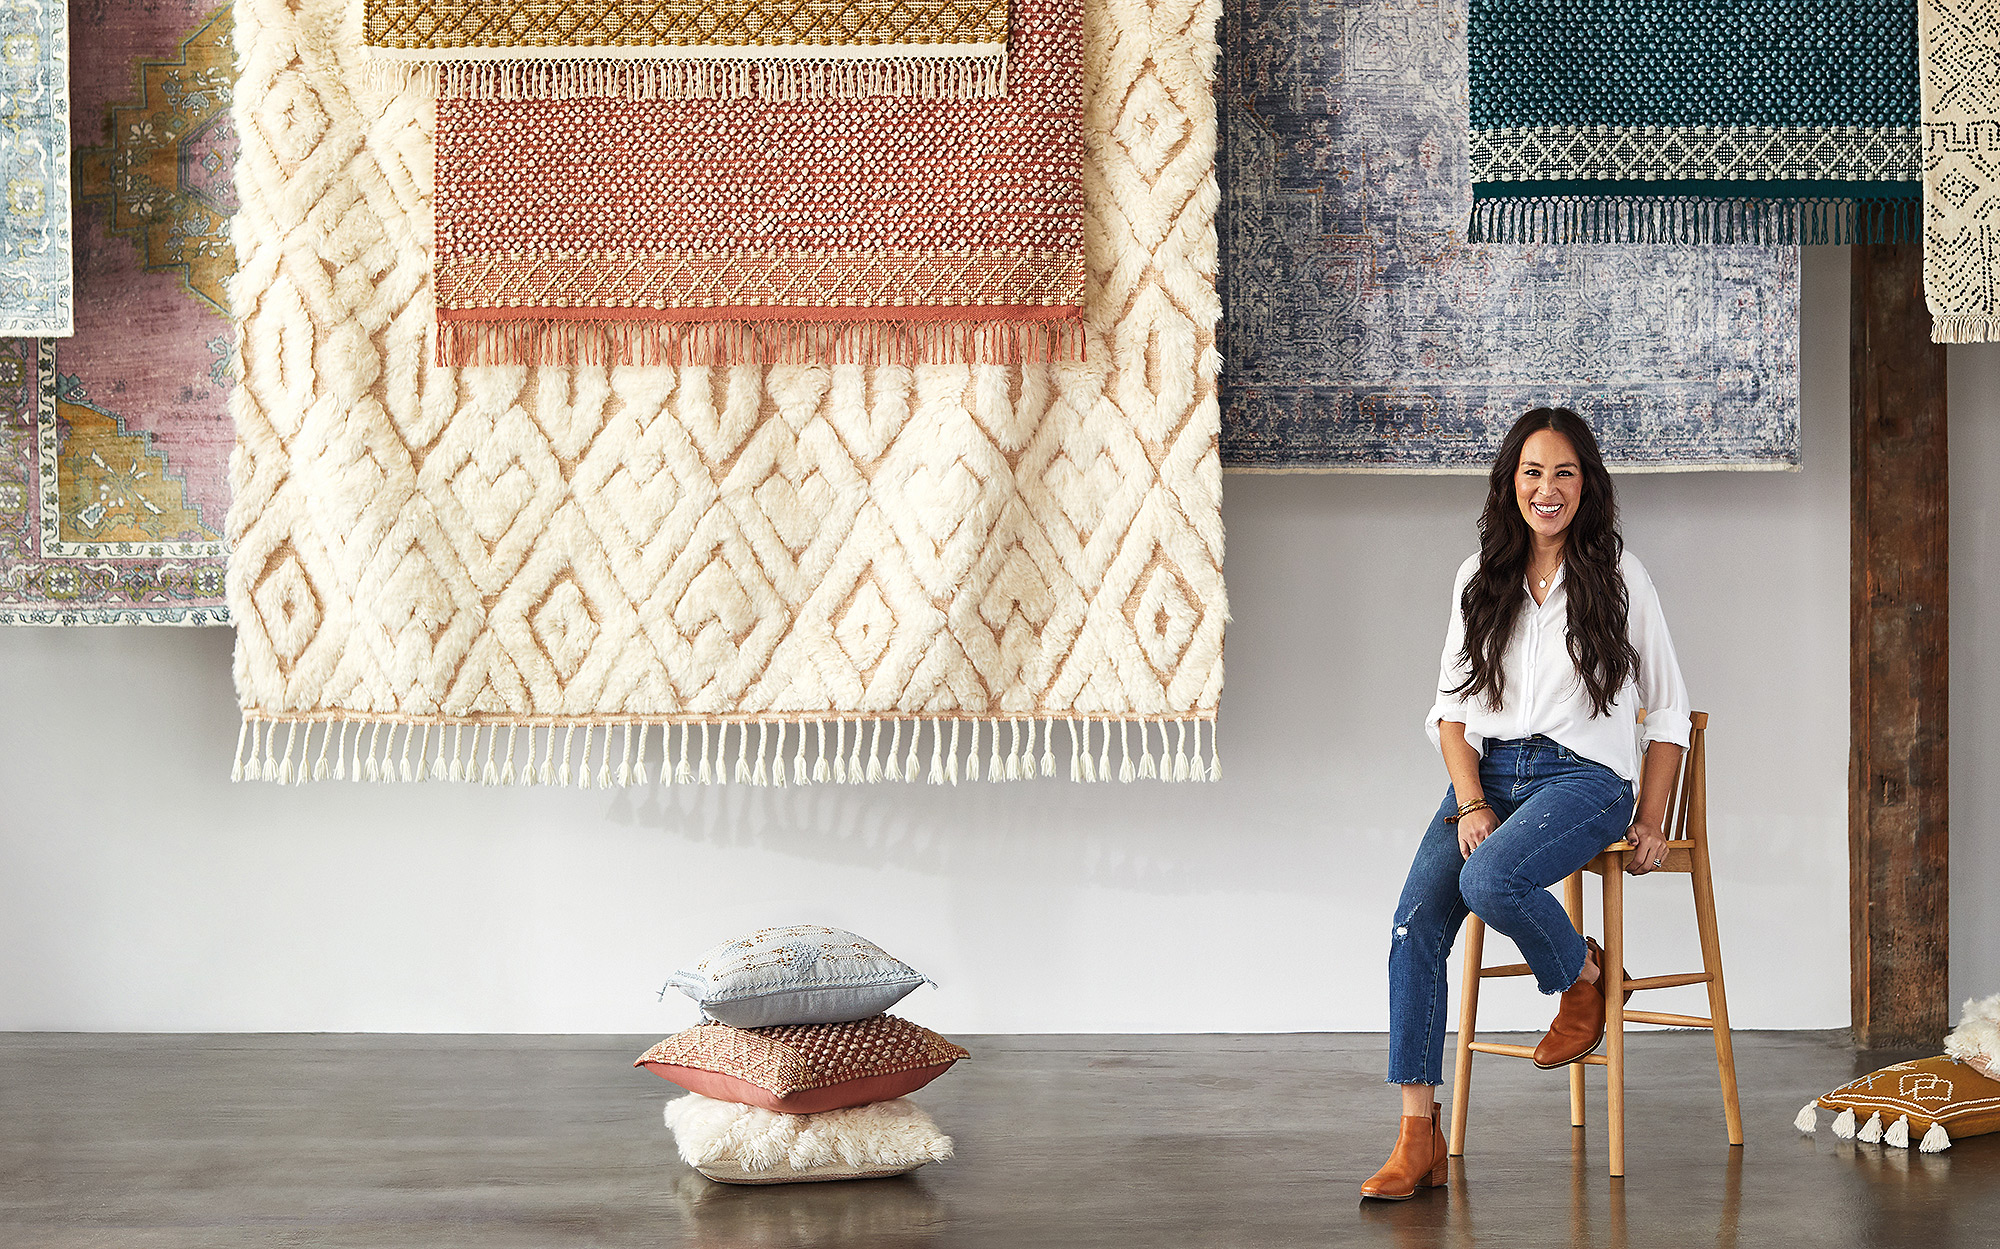 Joanna Gaines Launches 'Subtle, Classic' Collection of Rugs and Pillows at Anthropologie joanna-gaines-1-2